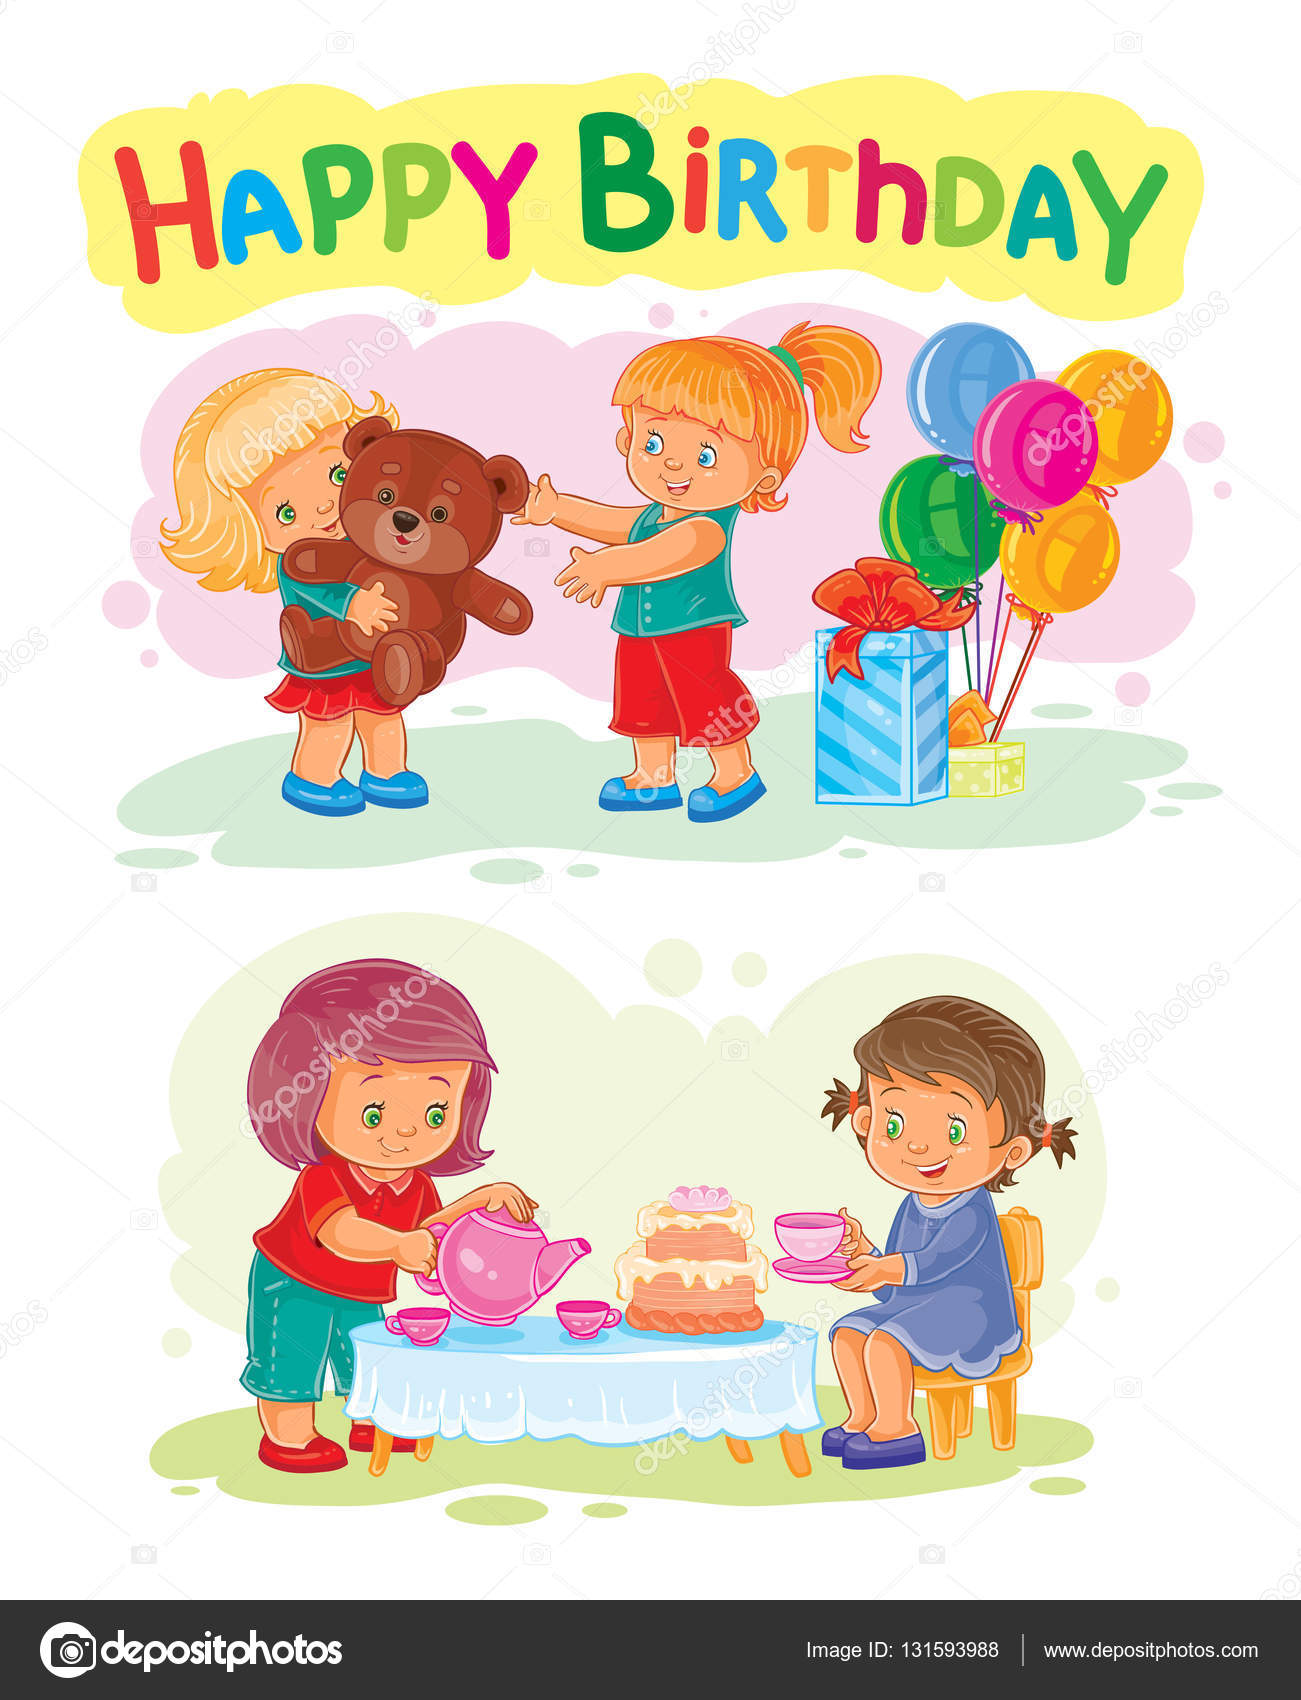 Template for happy birthday greeting card stock vector vector illustration of a little girl opens gifts template for happy birthday greeting card vector by vectorpocket kristyandbryce Image collections